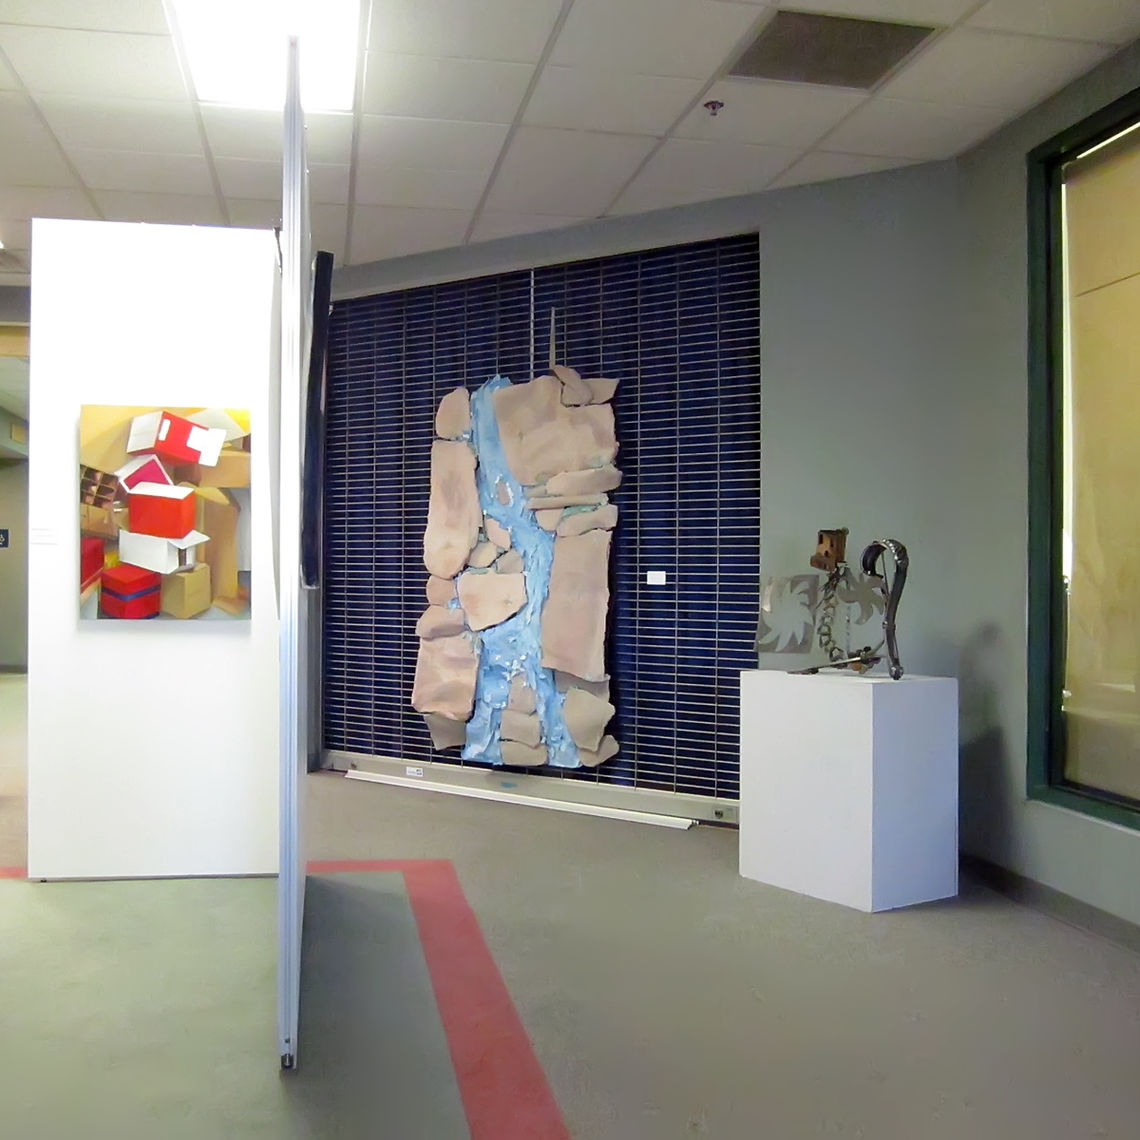 Artwork in the exhibition